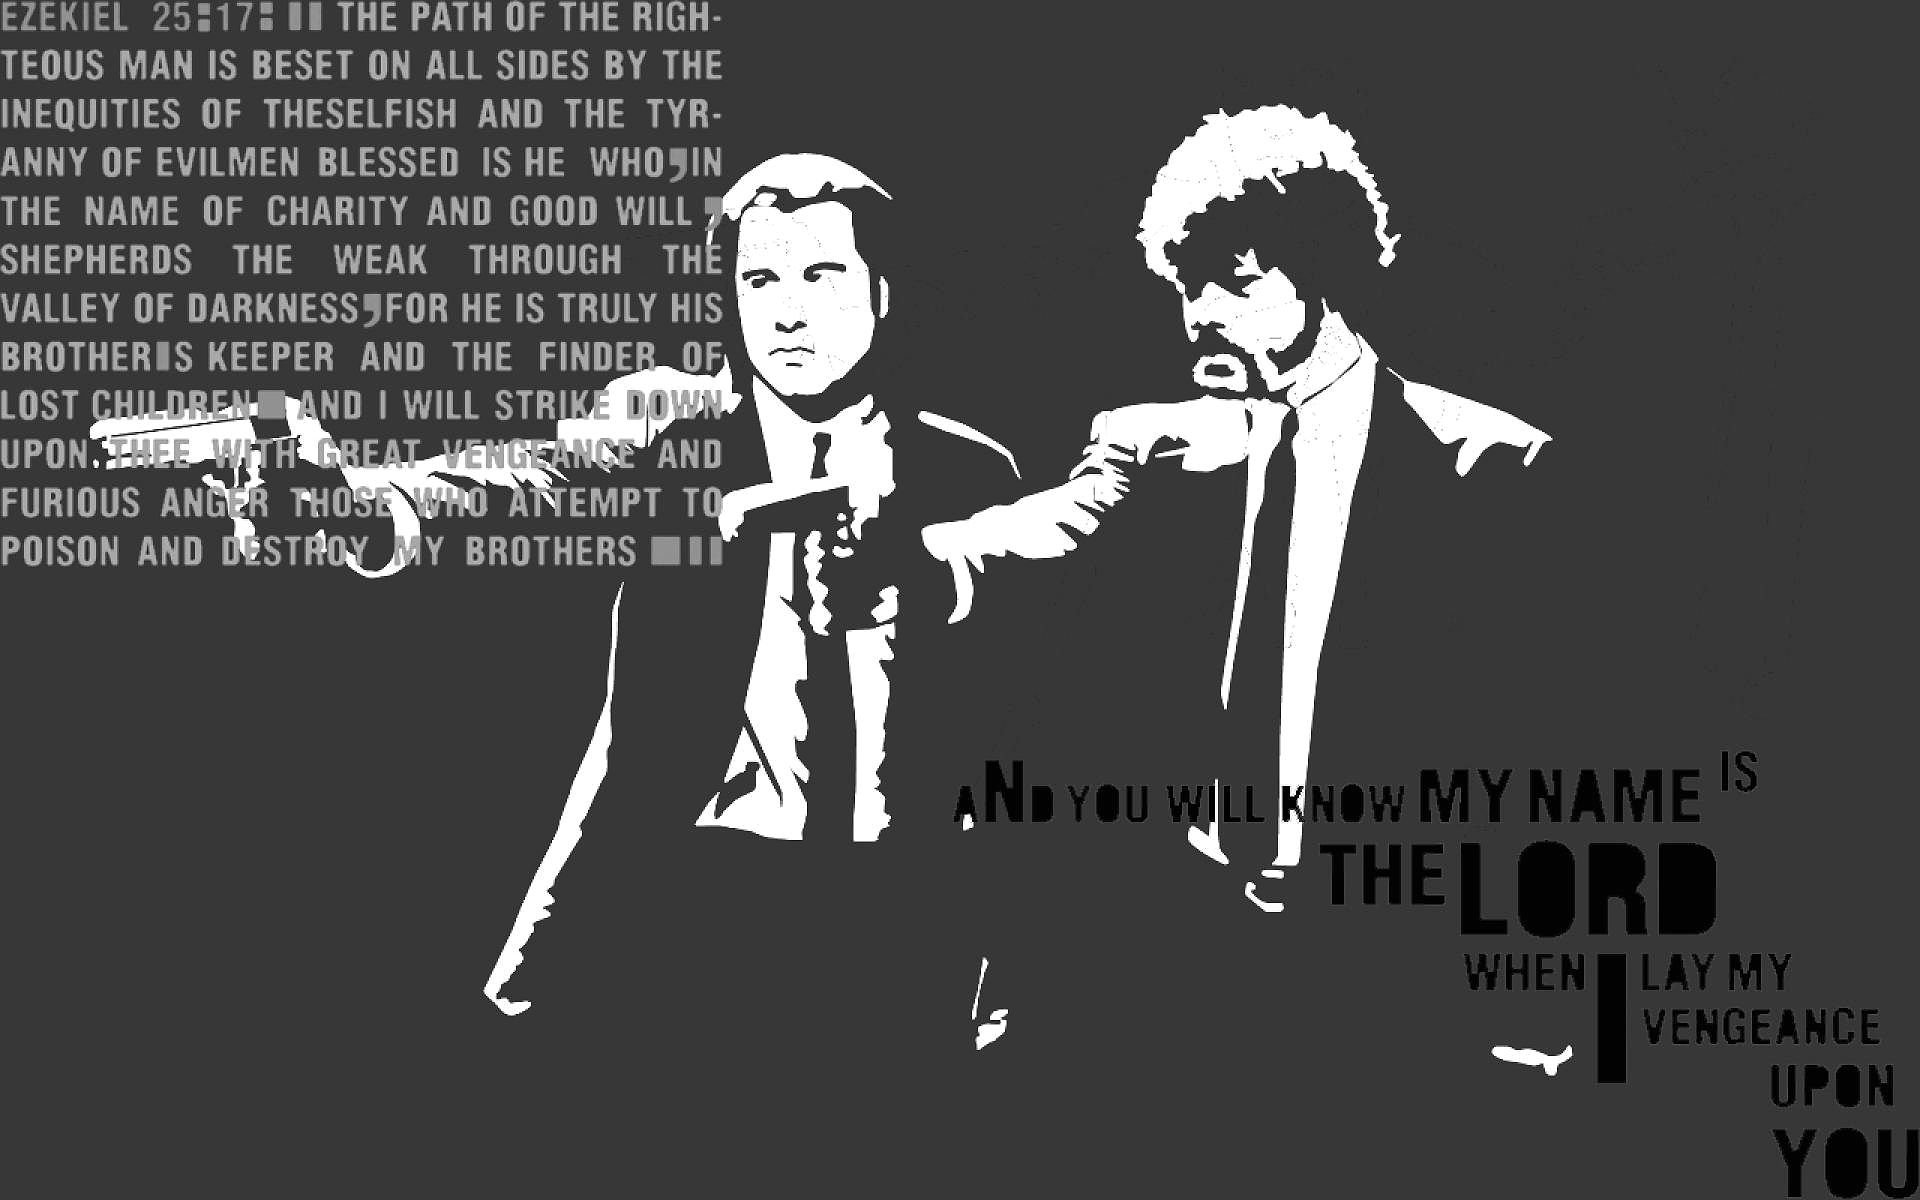 Bible Verse And Image Pulp Fiction Wallpaper: PULP FICTION Crime Thriller Drama Comedy Verse Bible